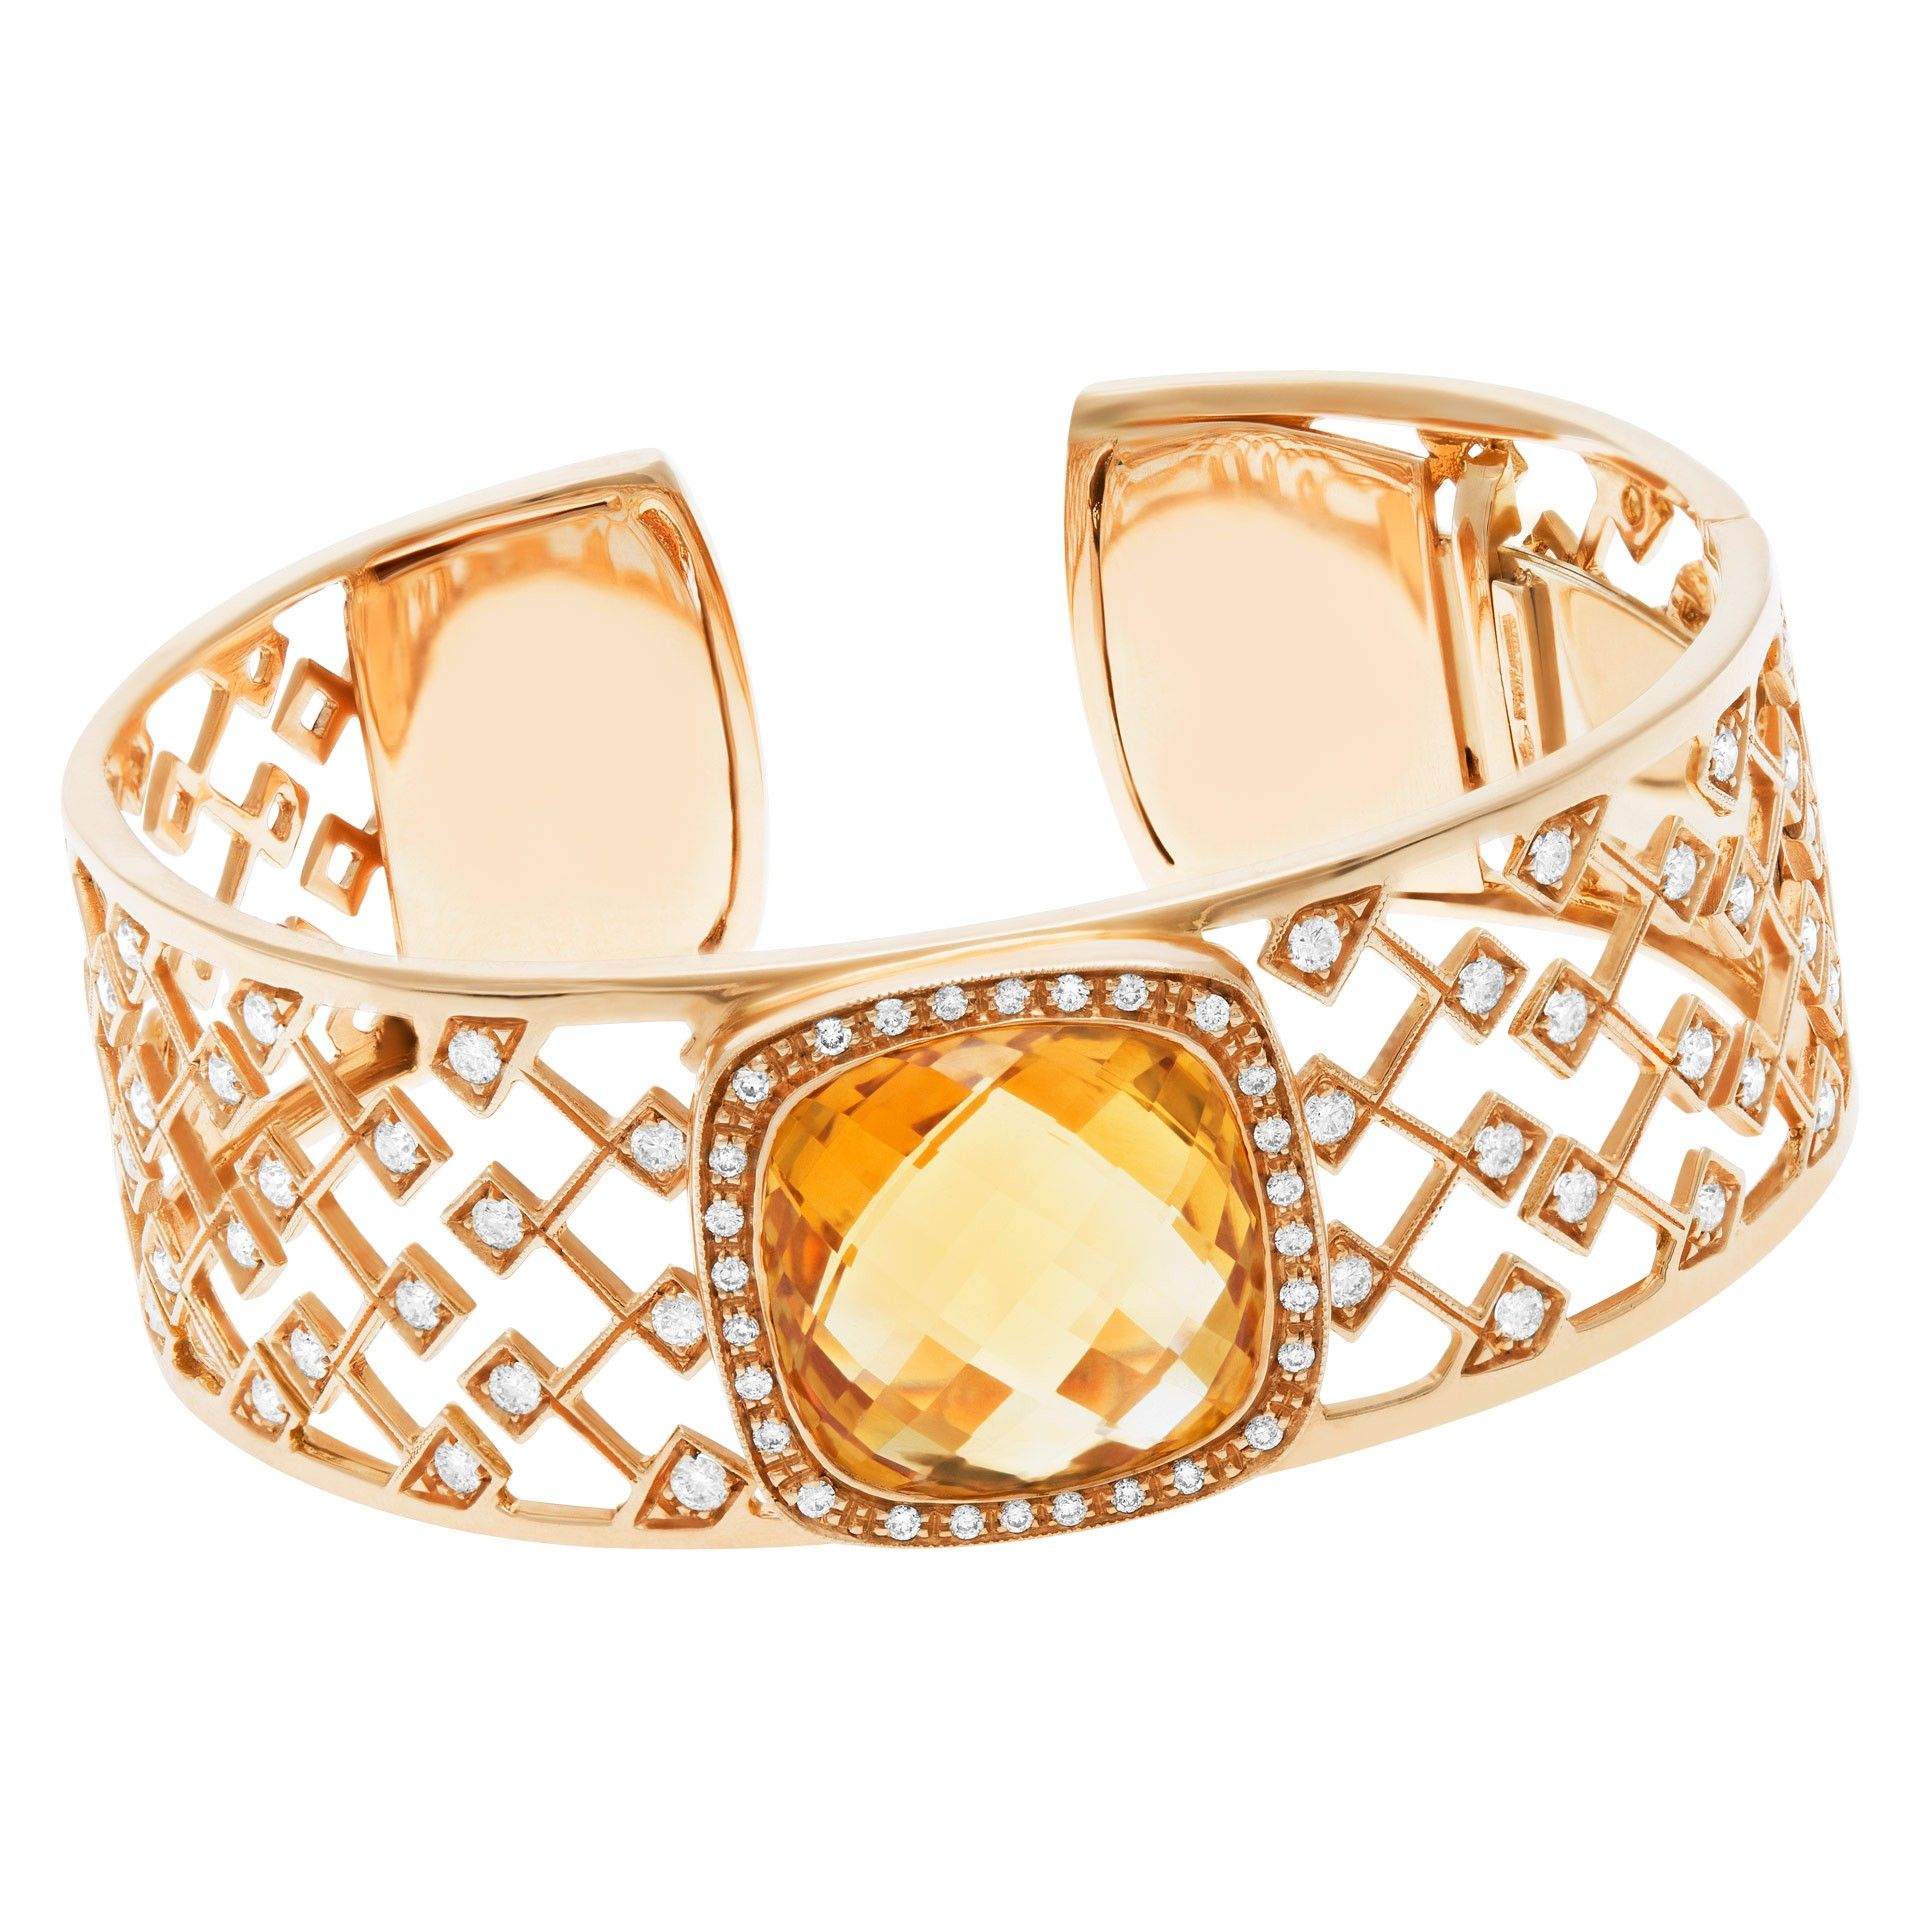 Roberto coin roberto coin k rose gold with citrine and diamonds